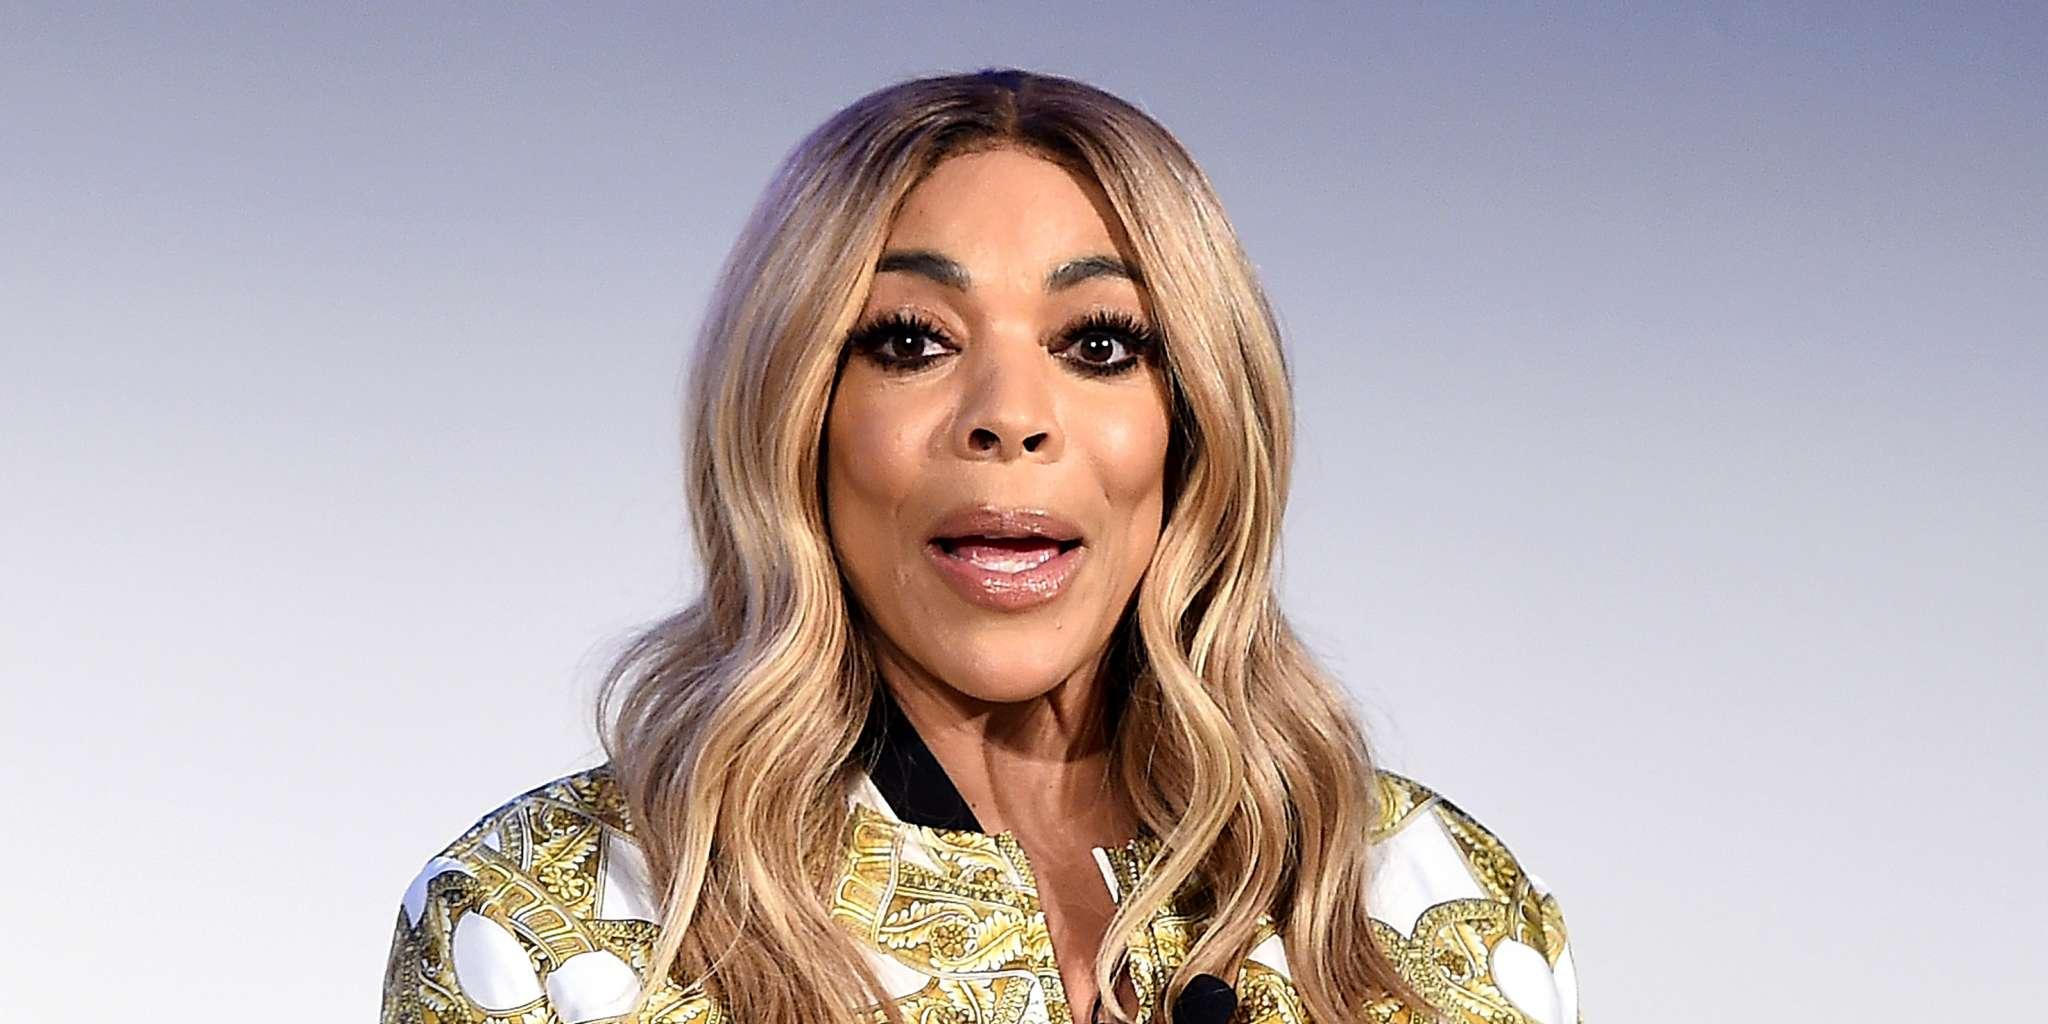 Wendy Williams Laughs About Her Divorce On Her Show And Reveals Plans With Her Son - See What She Said